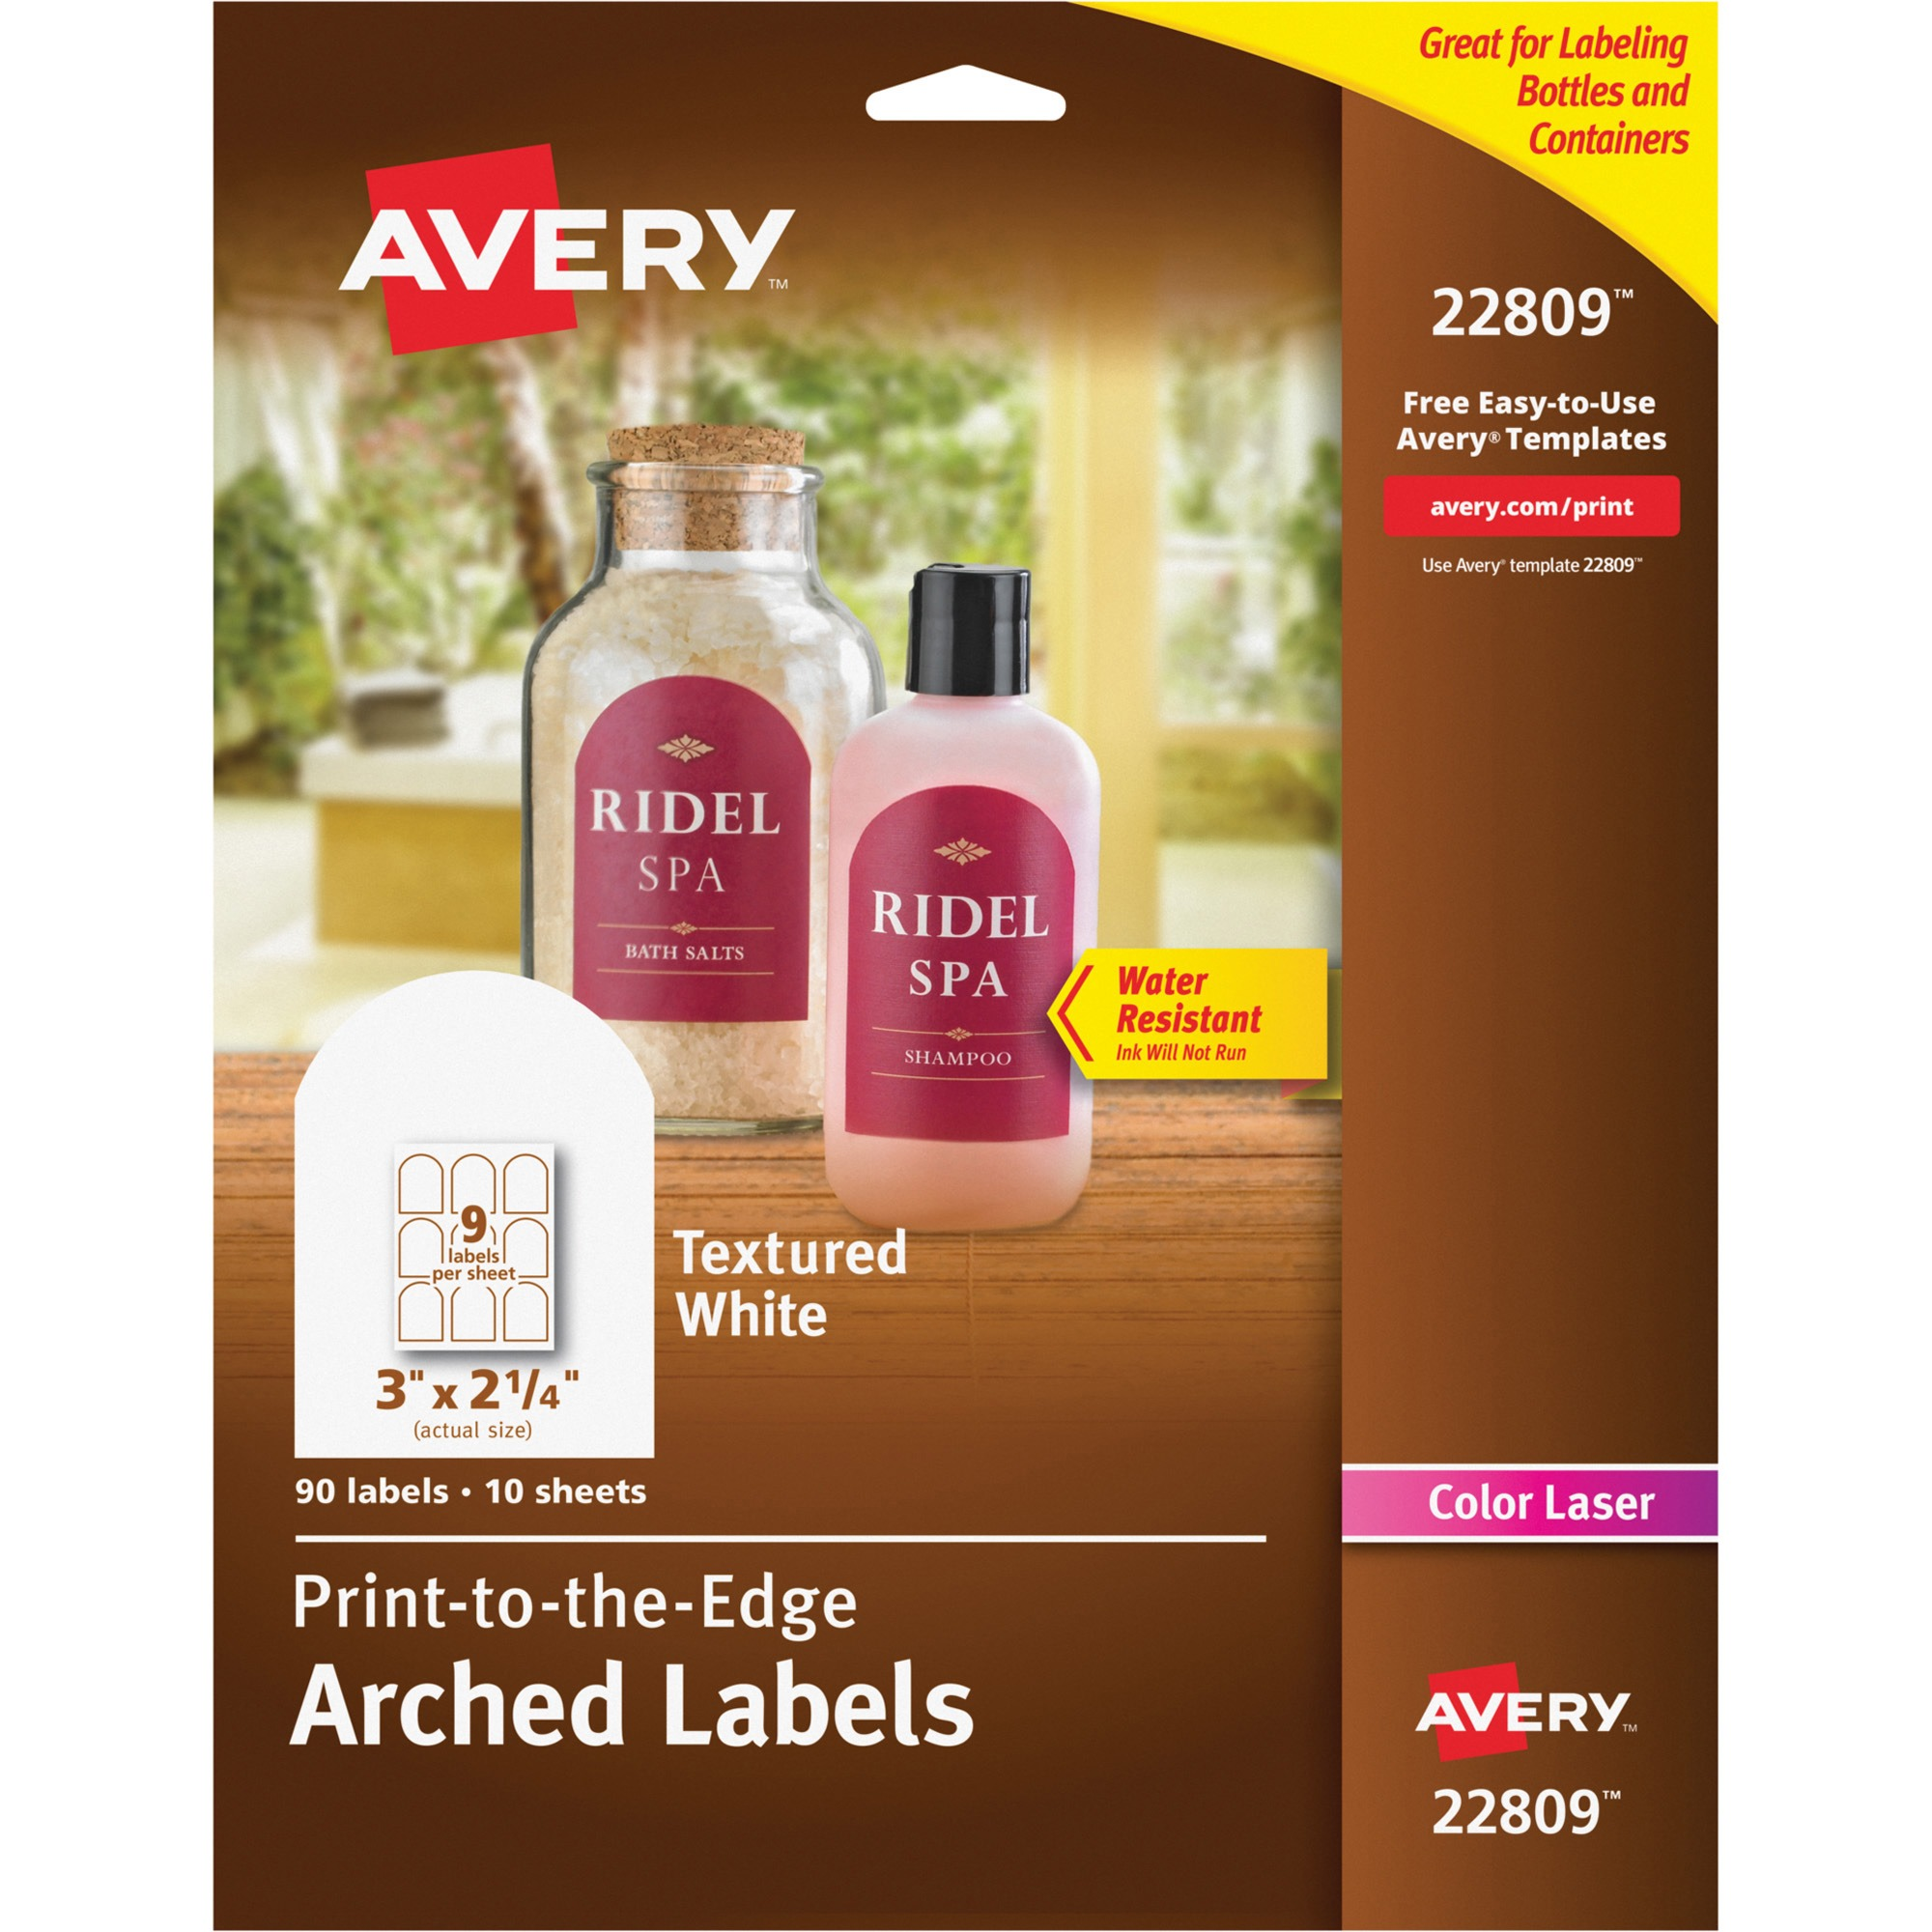 Textured White Print-to-the-Edge Arched Labels